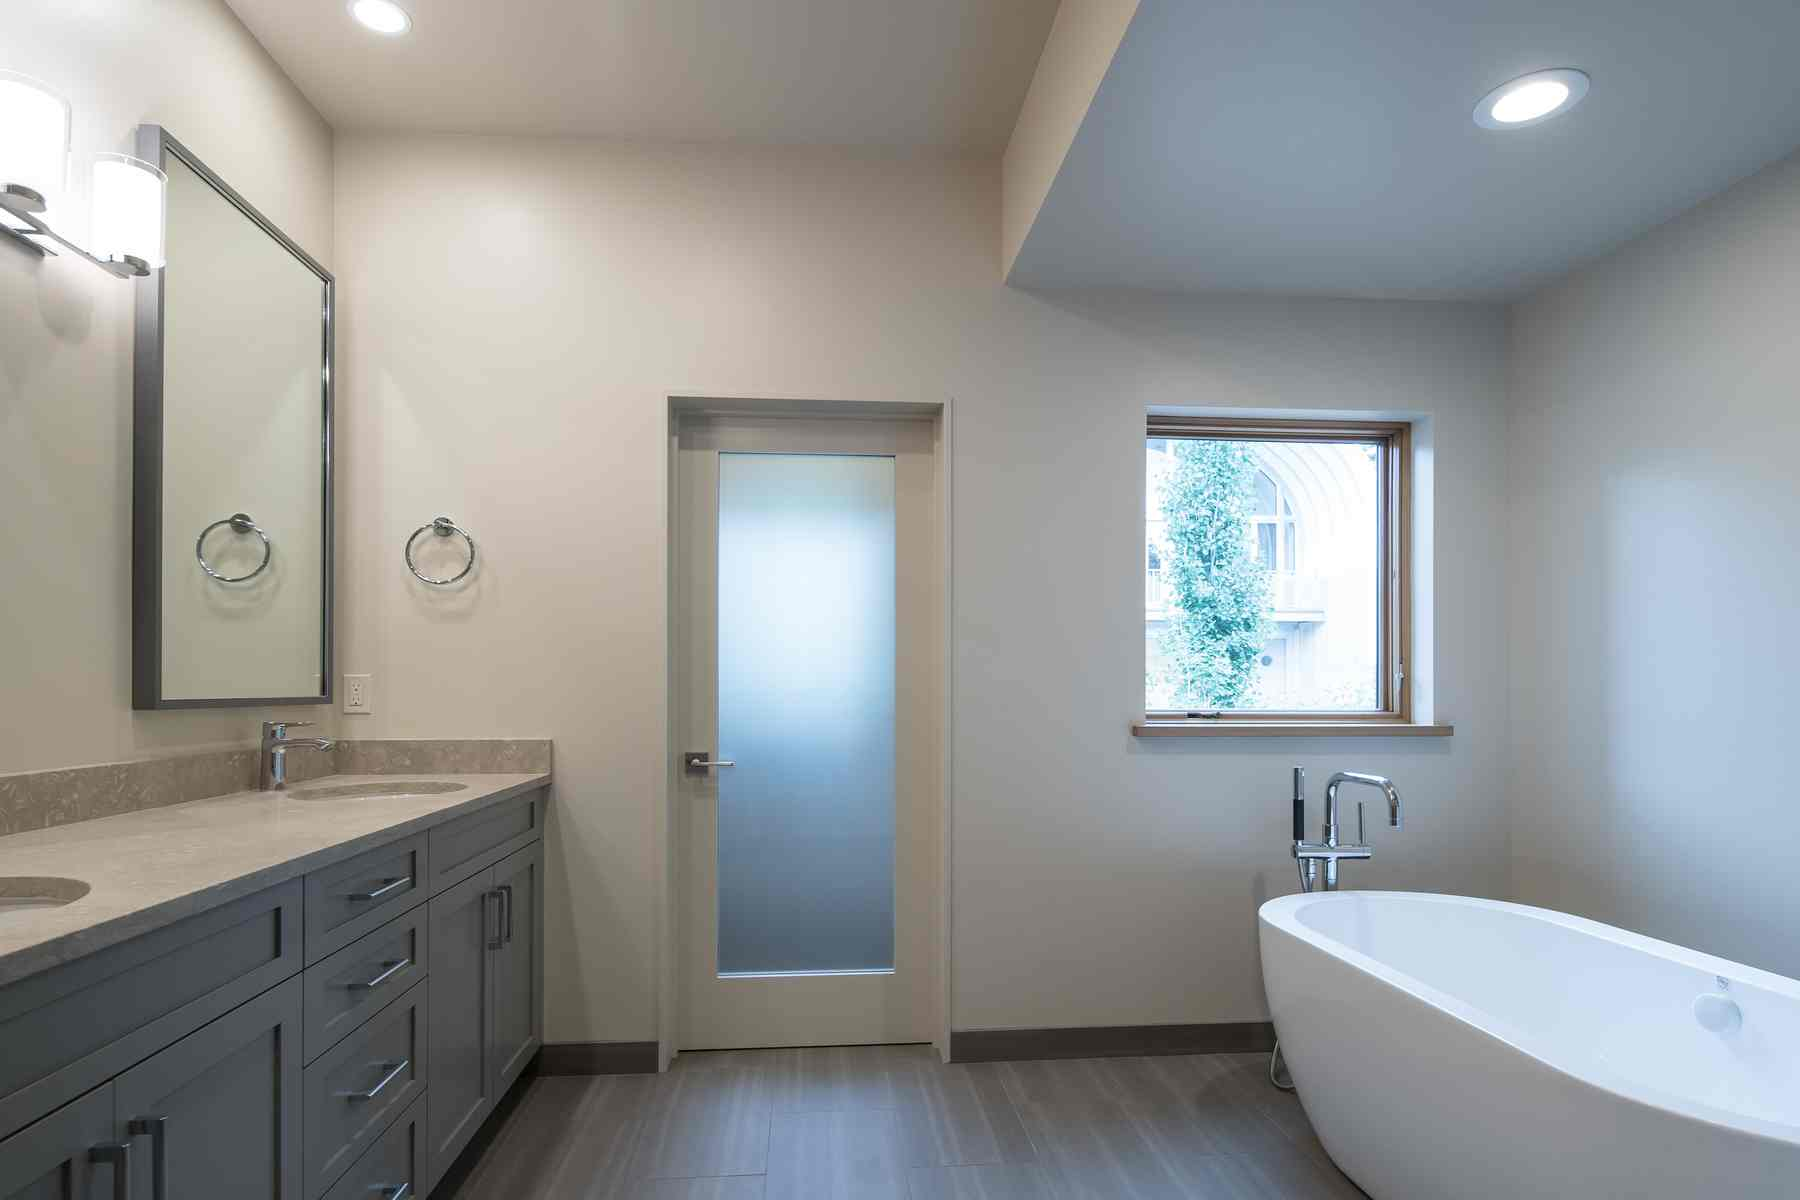 Additional photo for property listing at Architecturally Stunning 1301 Warm Springs Rd Ketchum, Idaho 83340 United States